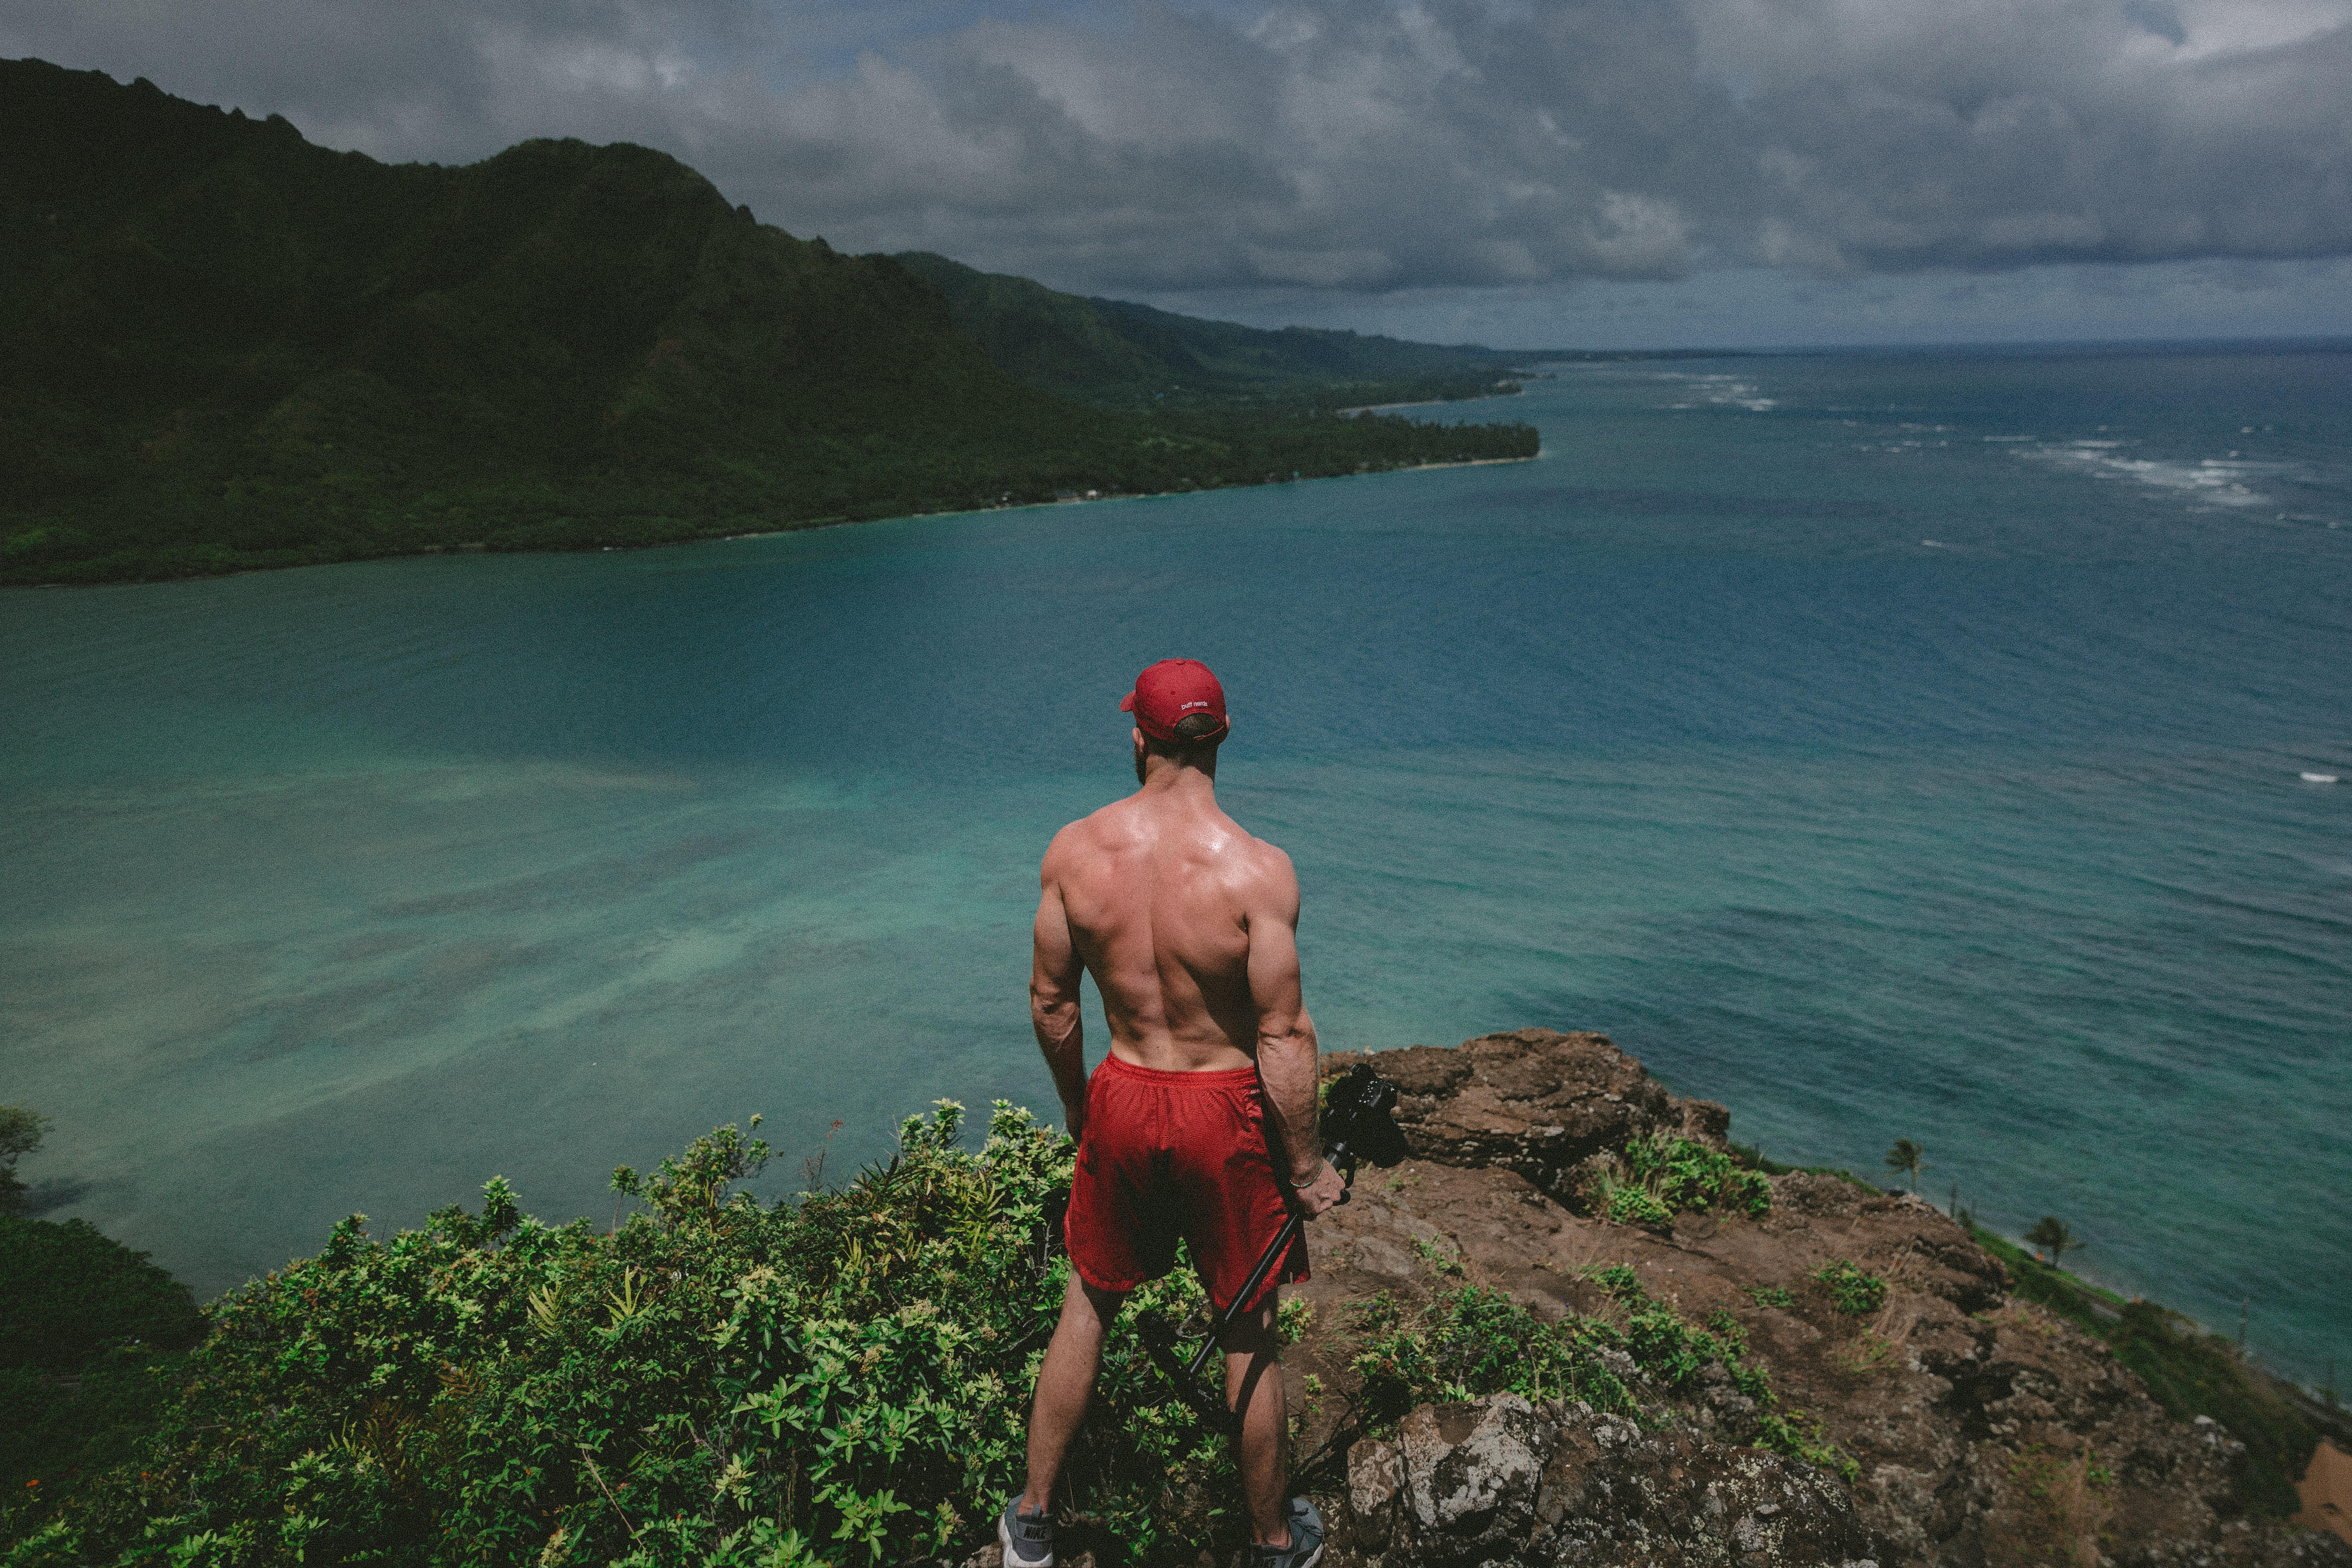 man standing on top of clipp watching body of water during daytime